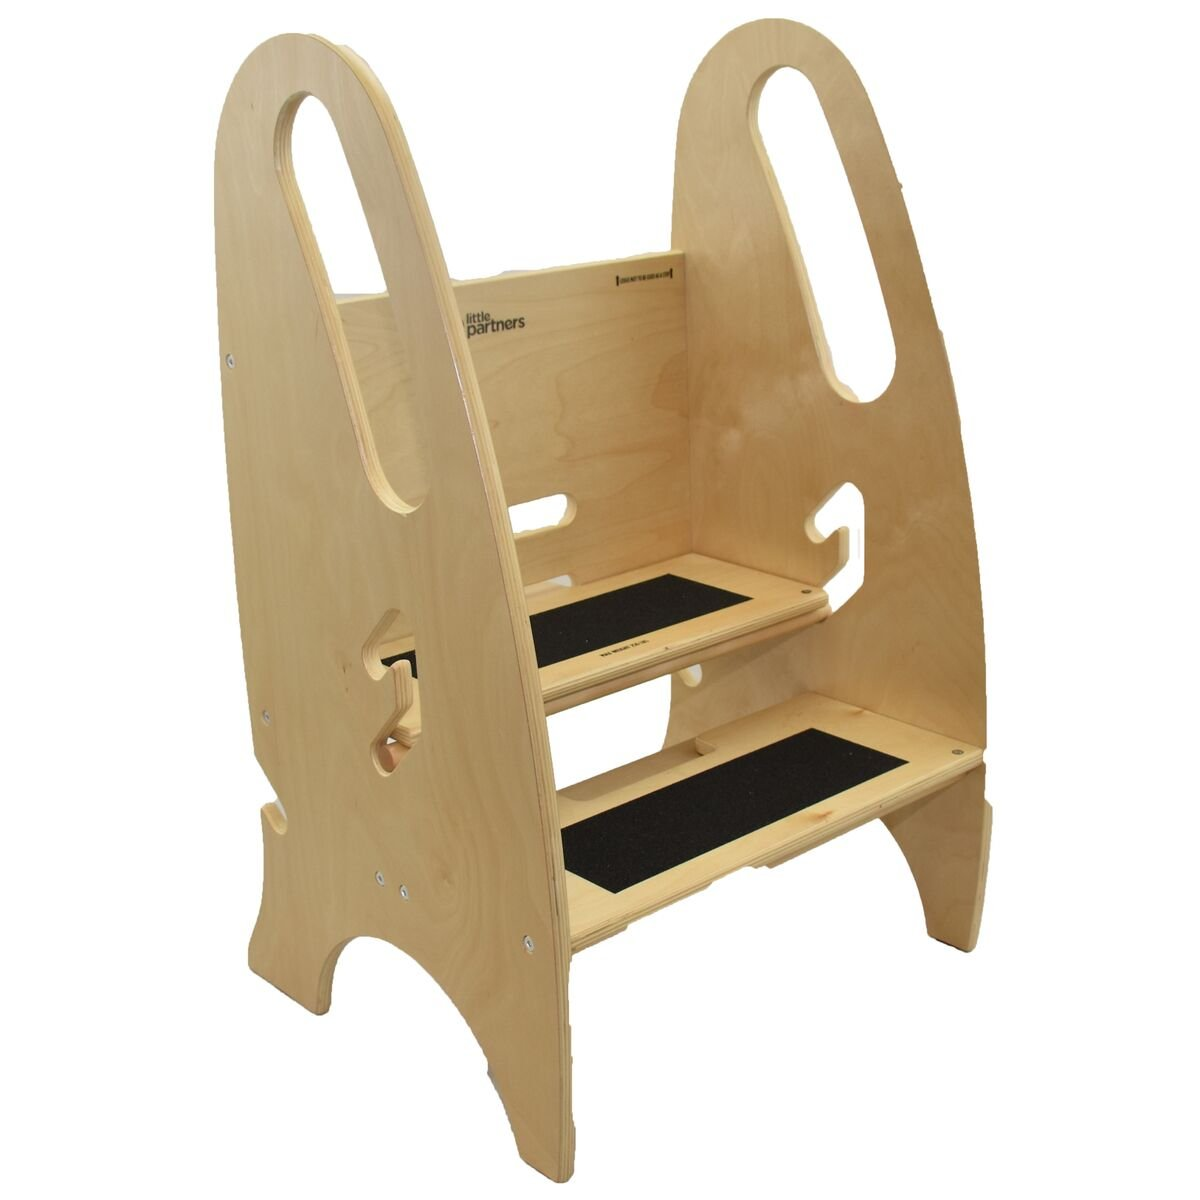 The Growing Step Stool by Little Partners (Natural) – Adjustable Height Nursery, Kitchen or Bathroom Kids Footstool – Wooden Non-Tip Design for Both Toddlers & Adults (Supports Up To 250lbs) by Little Partners